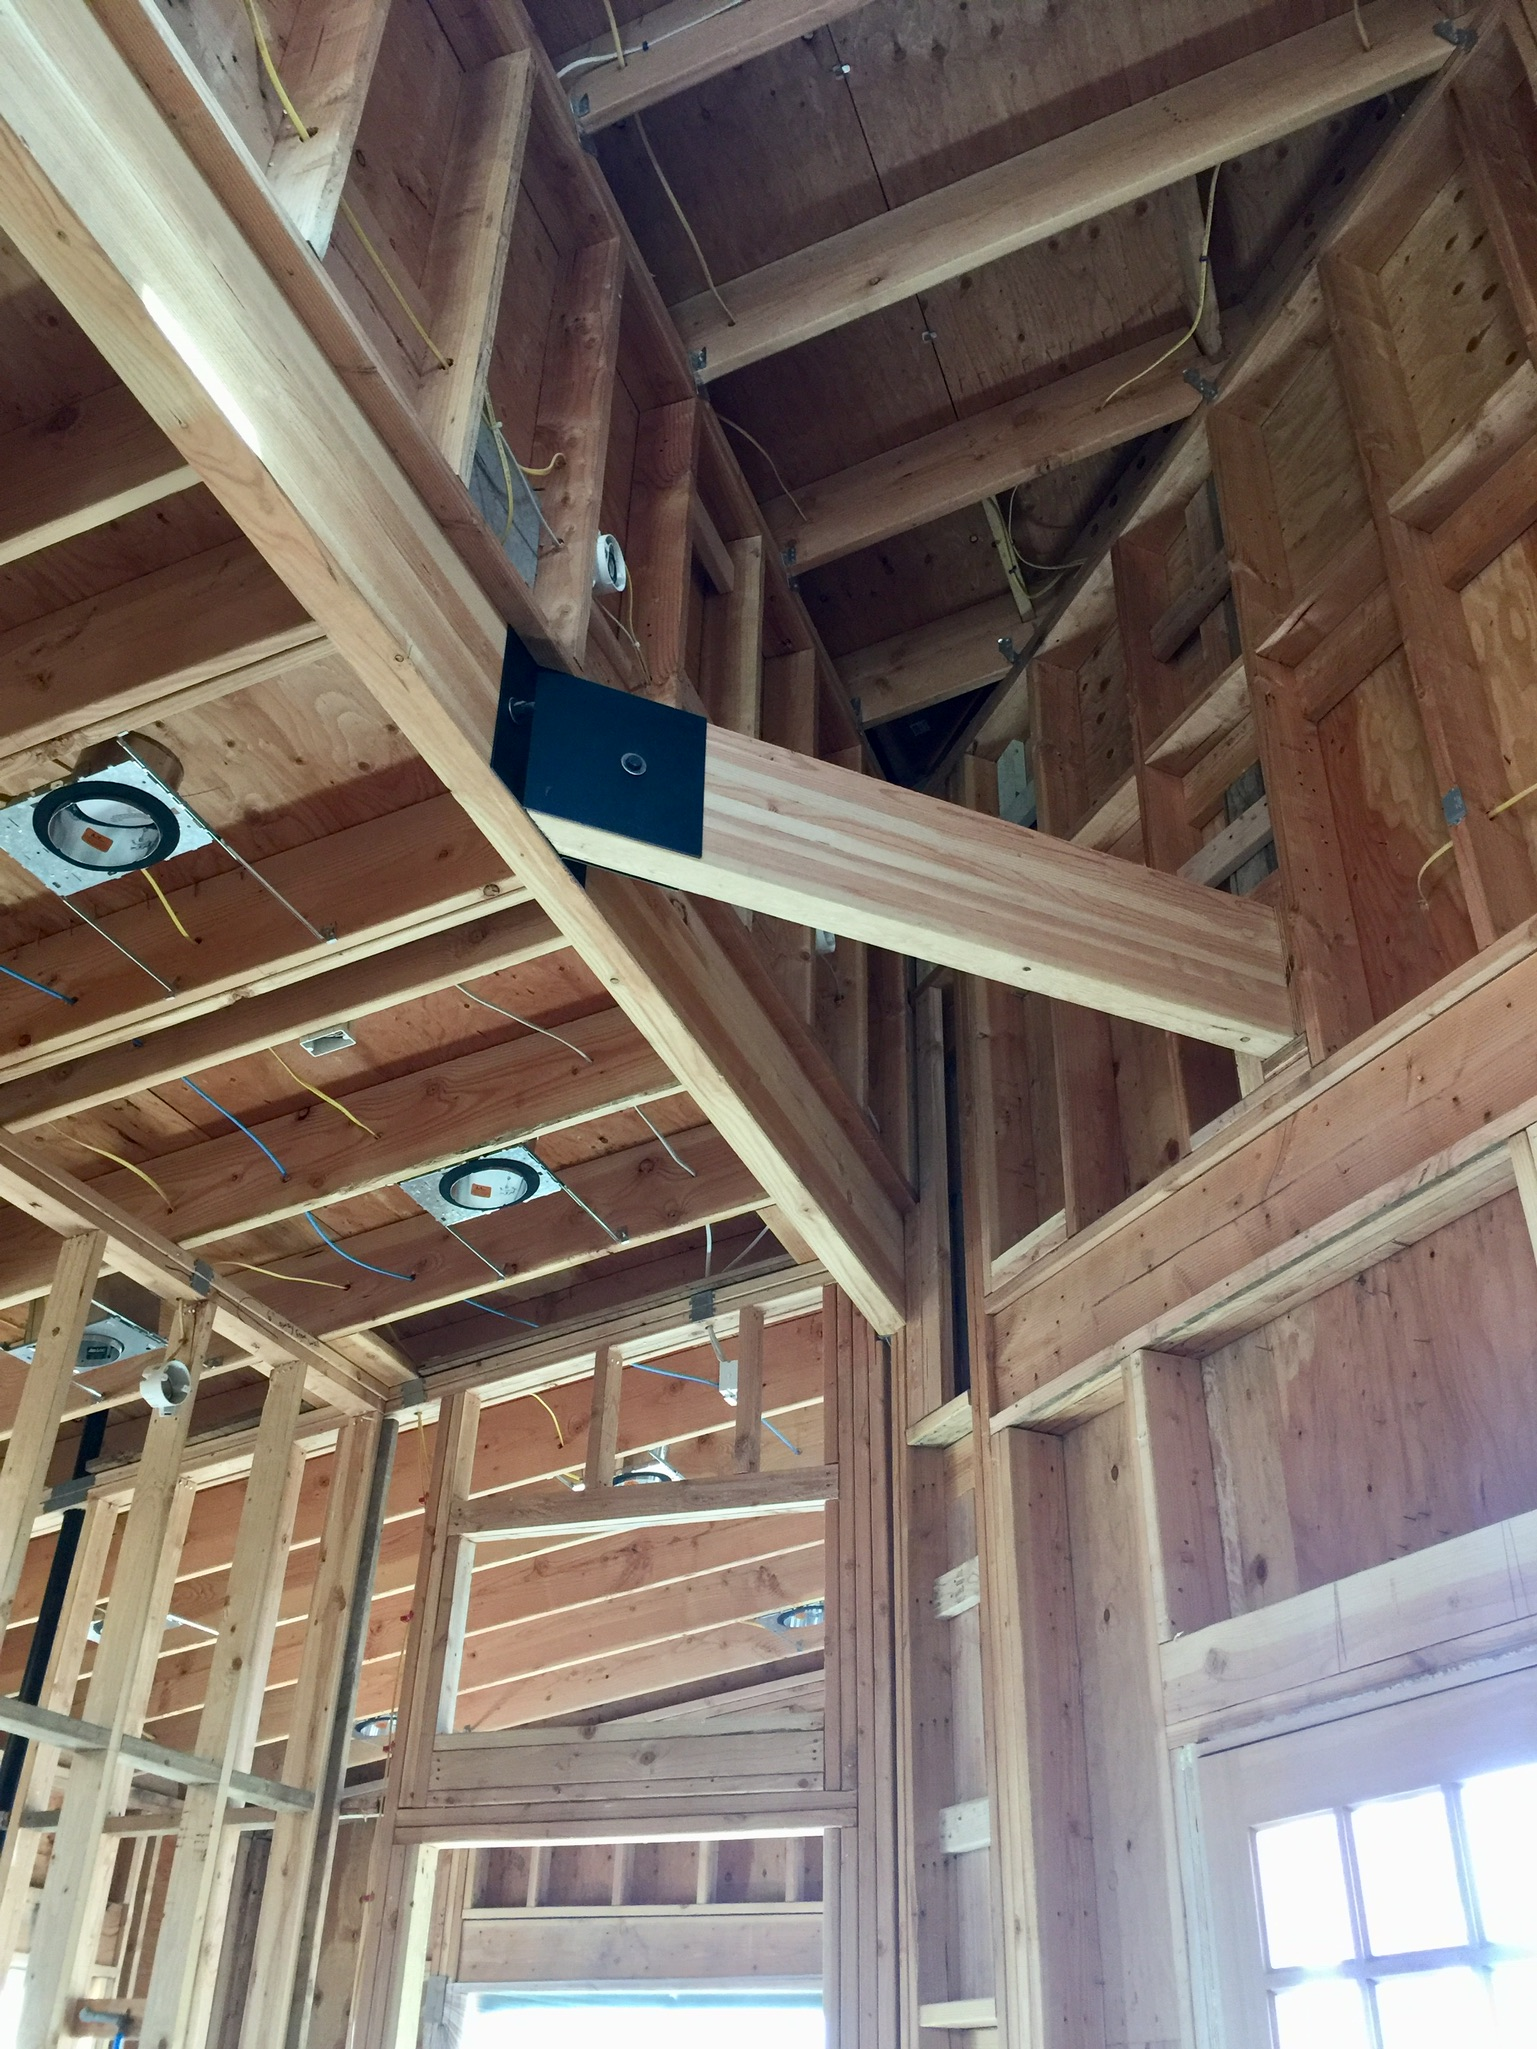 Exposed architectural beams